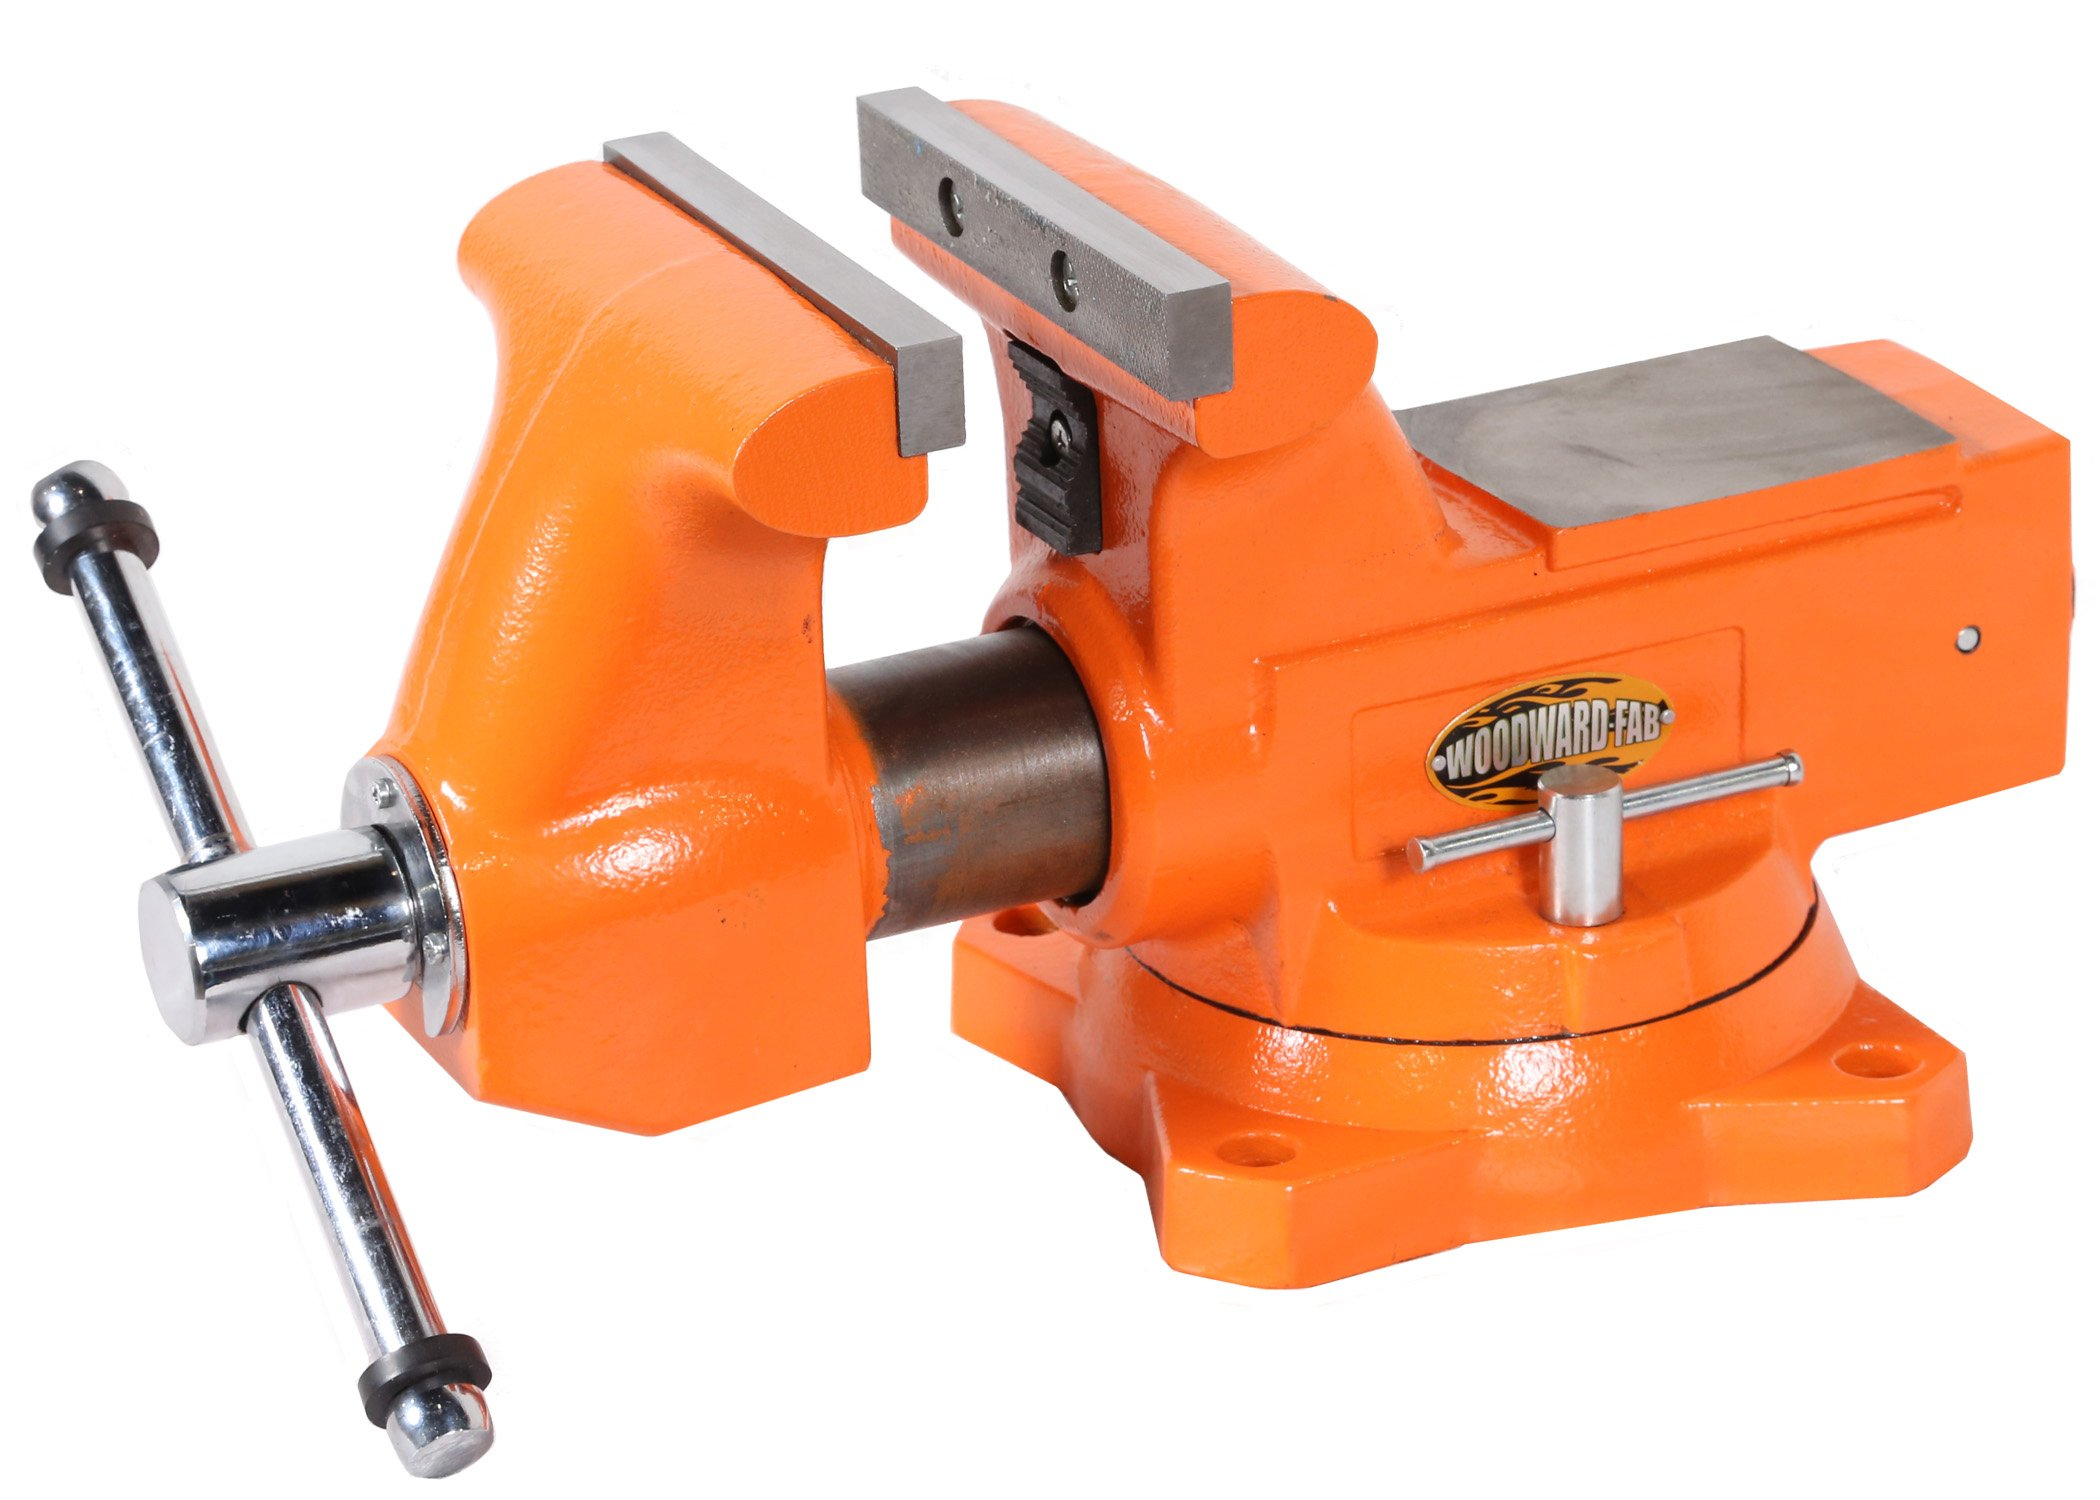 Woodward Fab WFV6.5 Bench Vise, 6-1/2'' Jaws, Solid Cast Iron by Woodward Fab